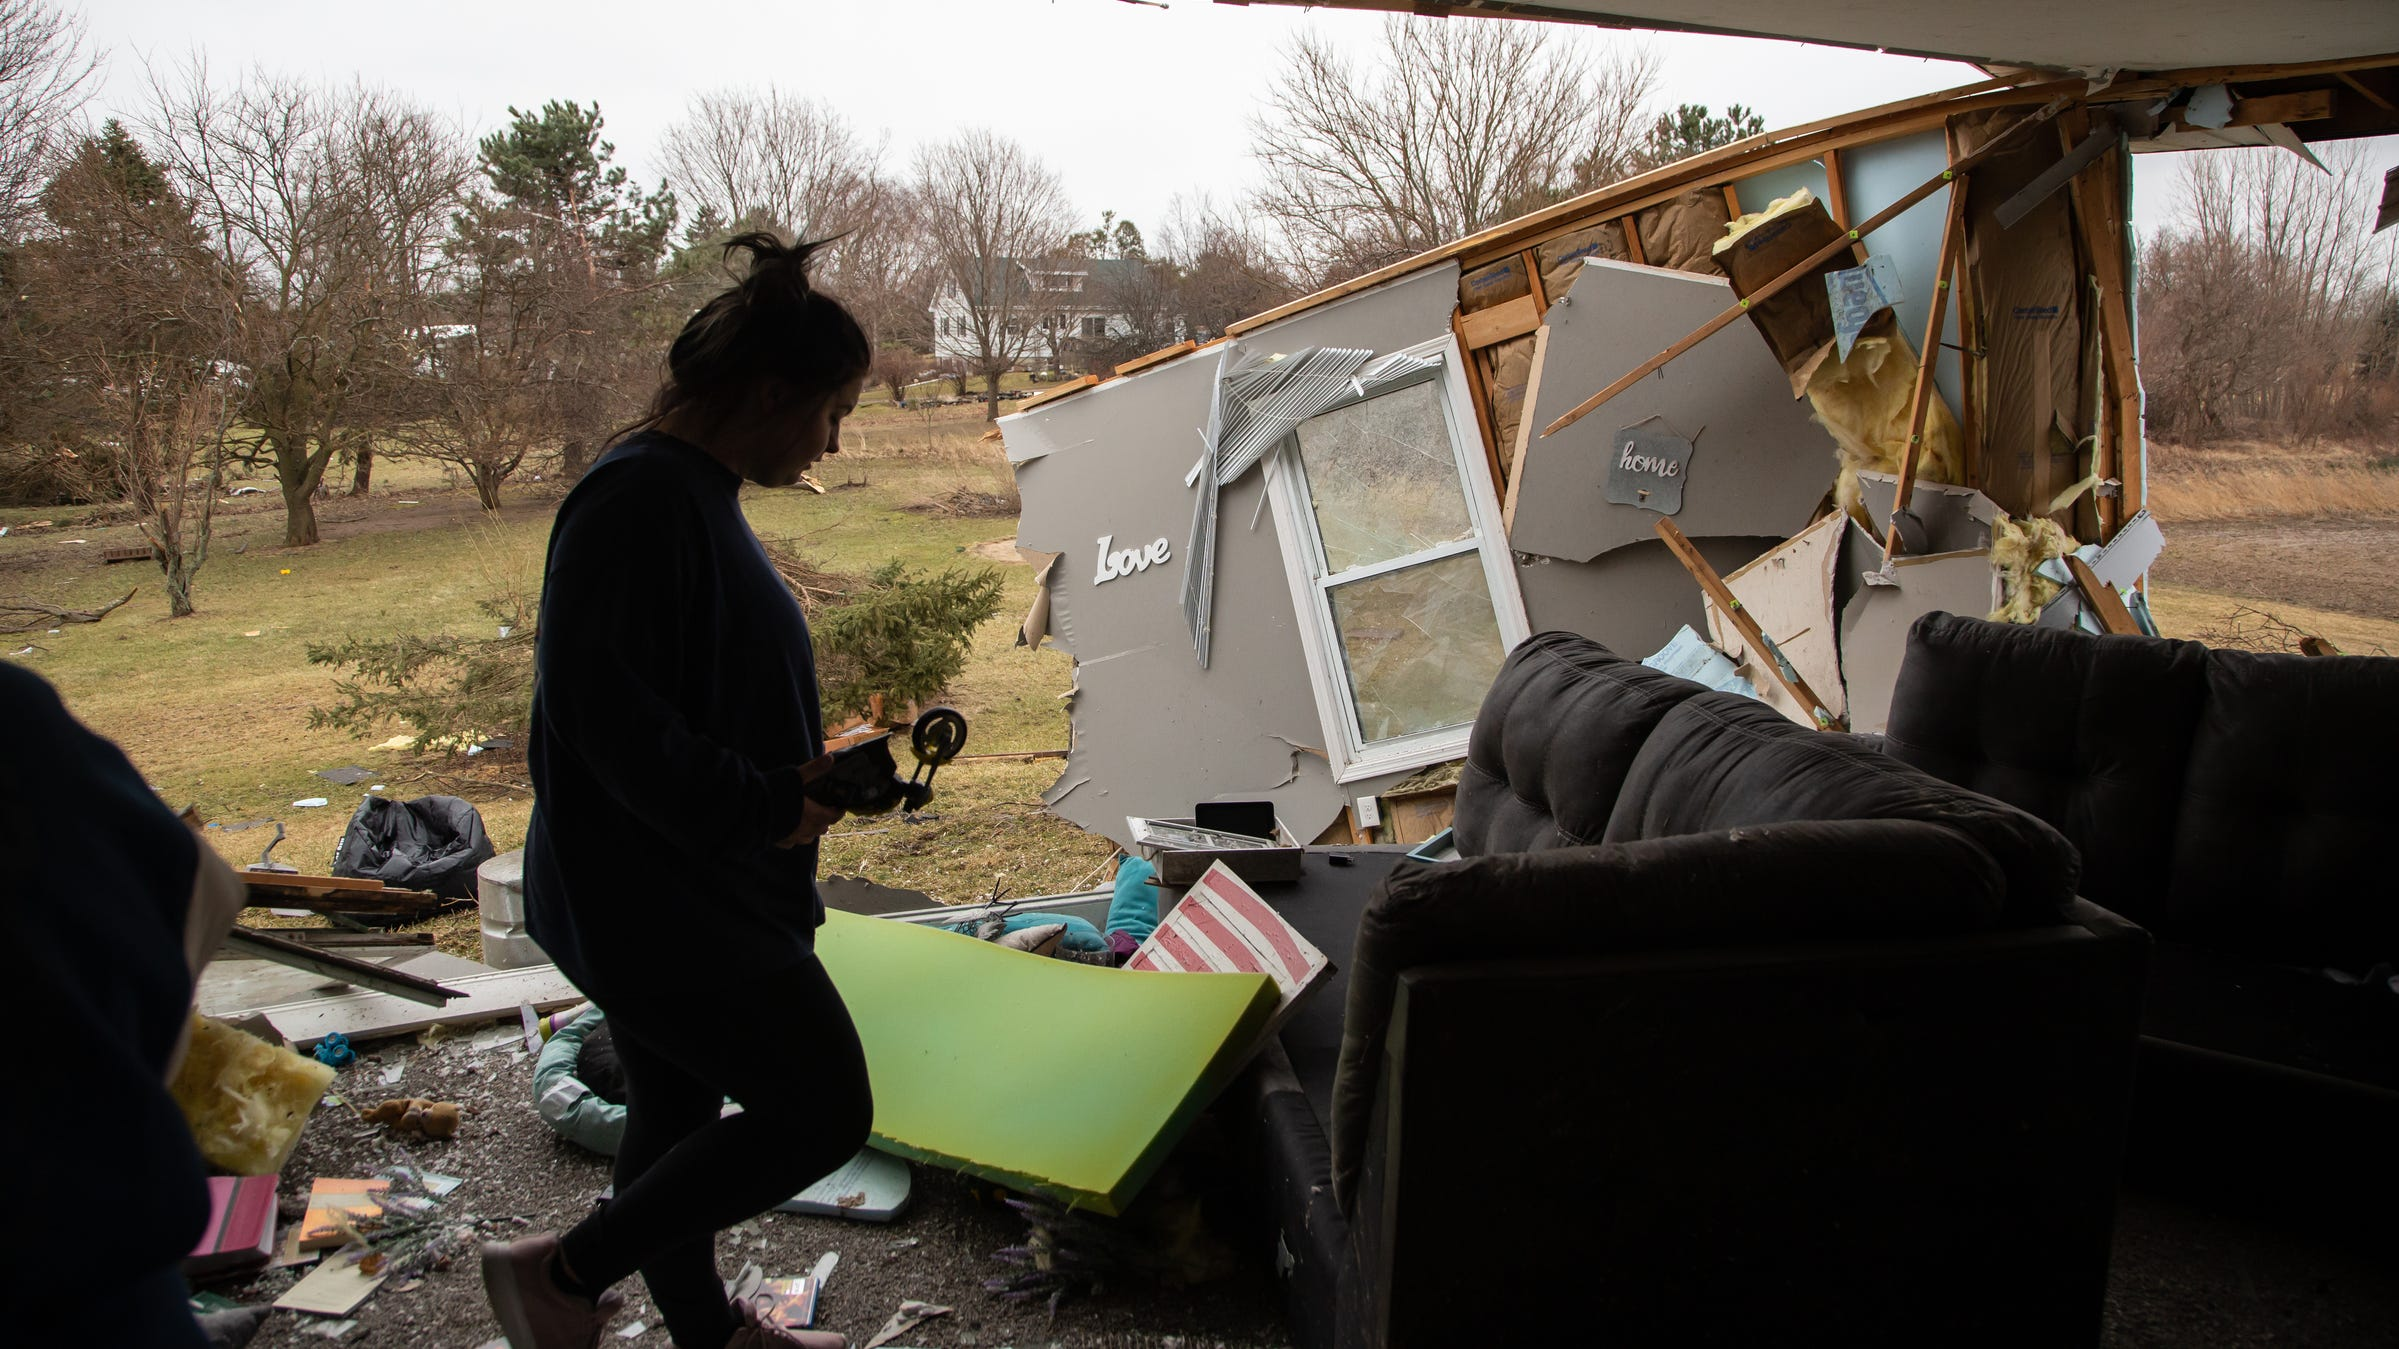 Dozens of structures damaged after tornado hits Shiawassee Co.